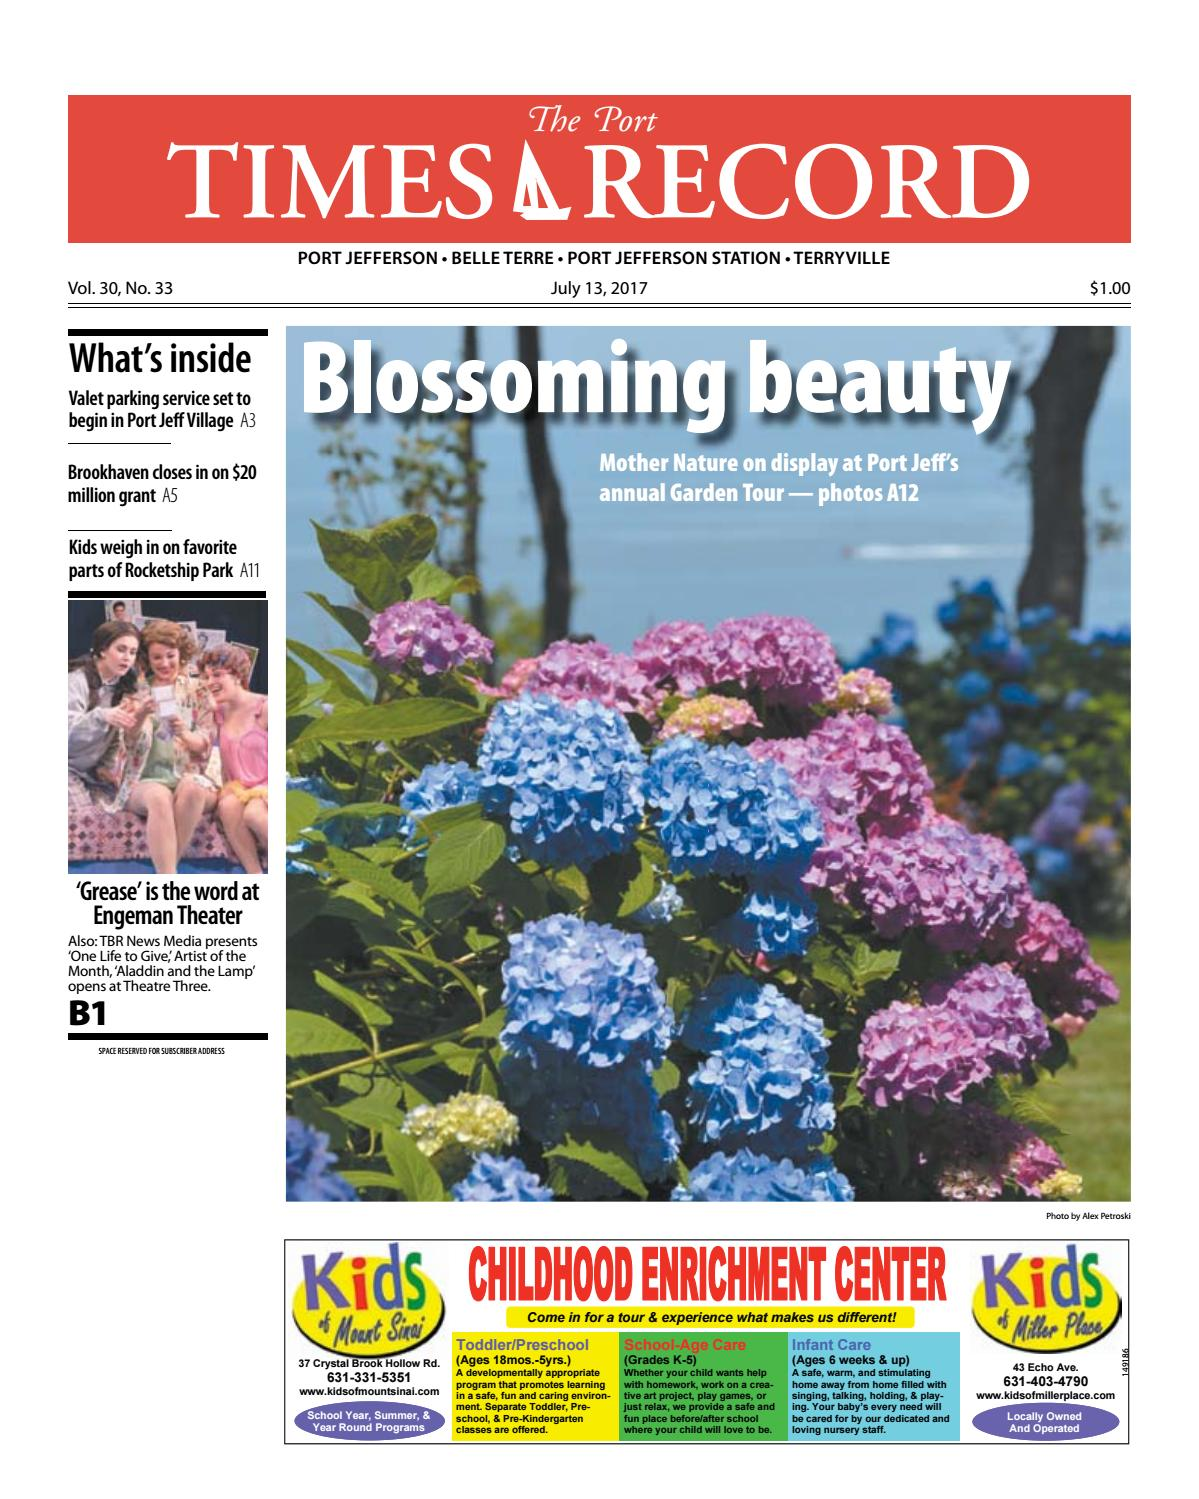 The Port Times Record - July 13, 2017